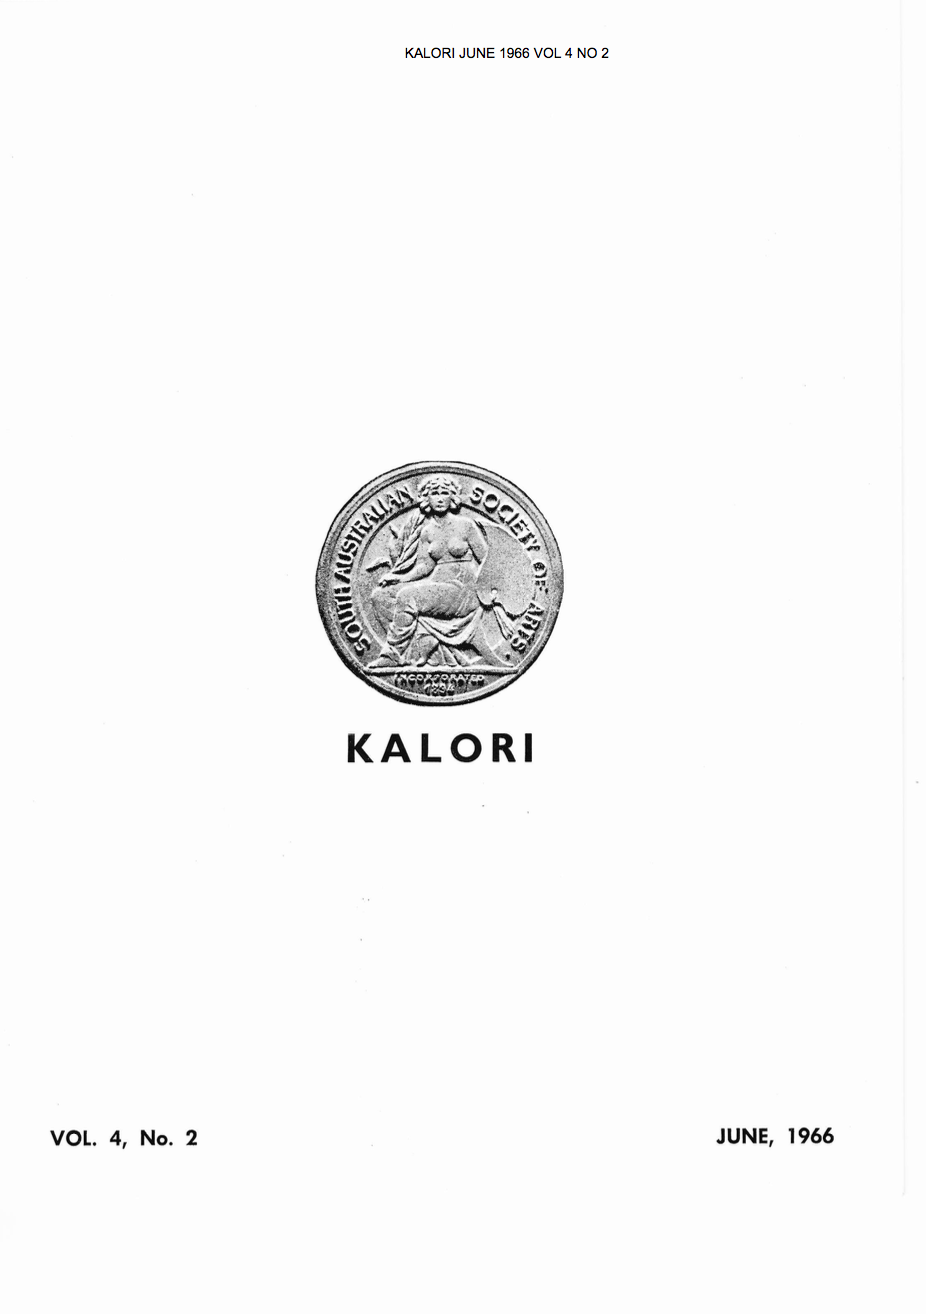 KALORI | Volume 4 No 2 1966  |  Cover features South Australian Society of Arts Medal: Incorporated 1894